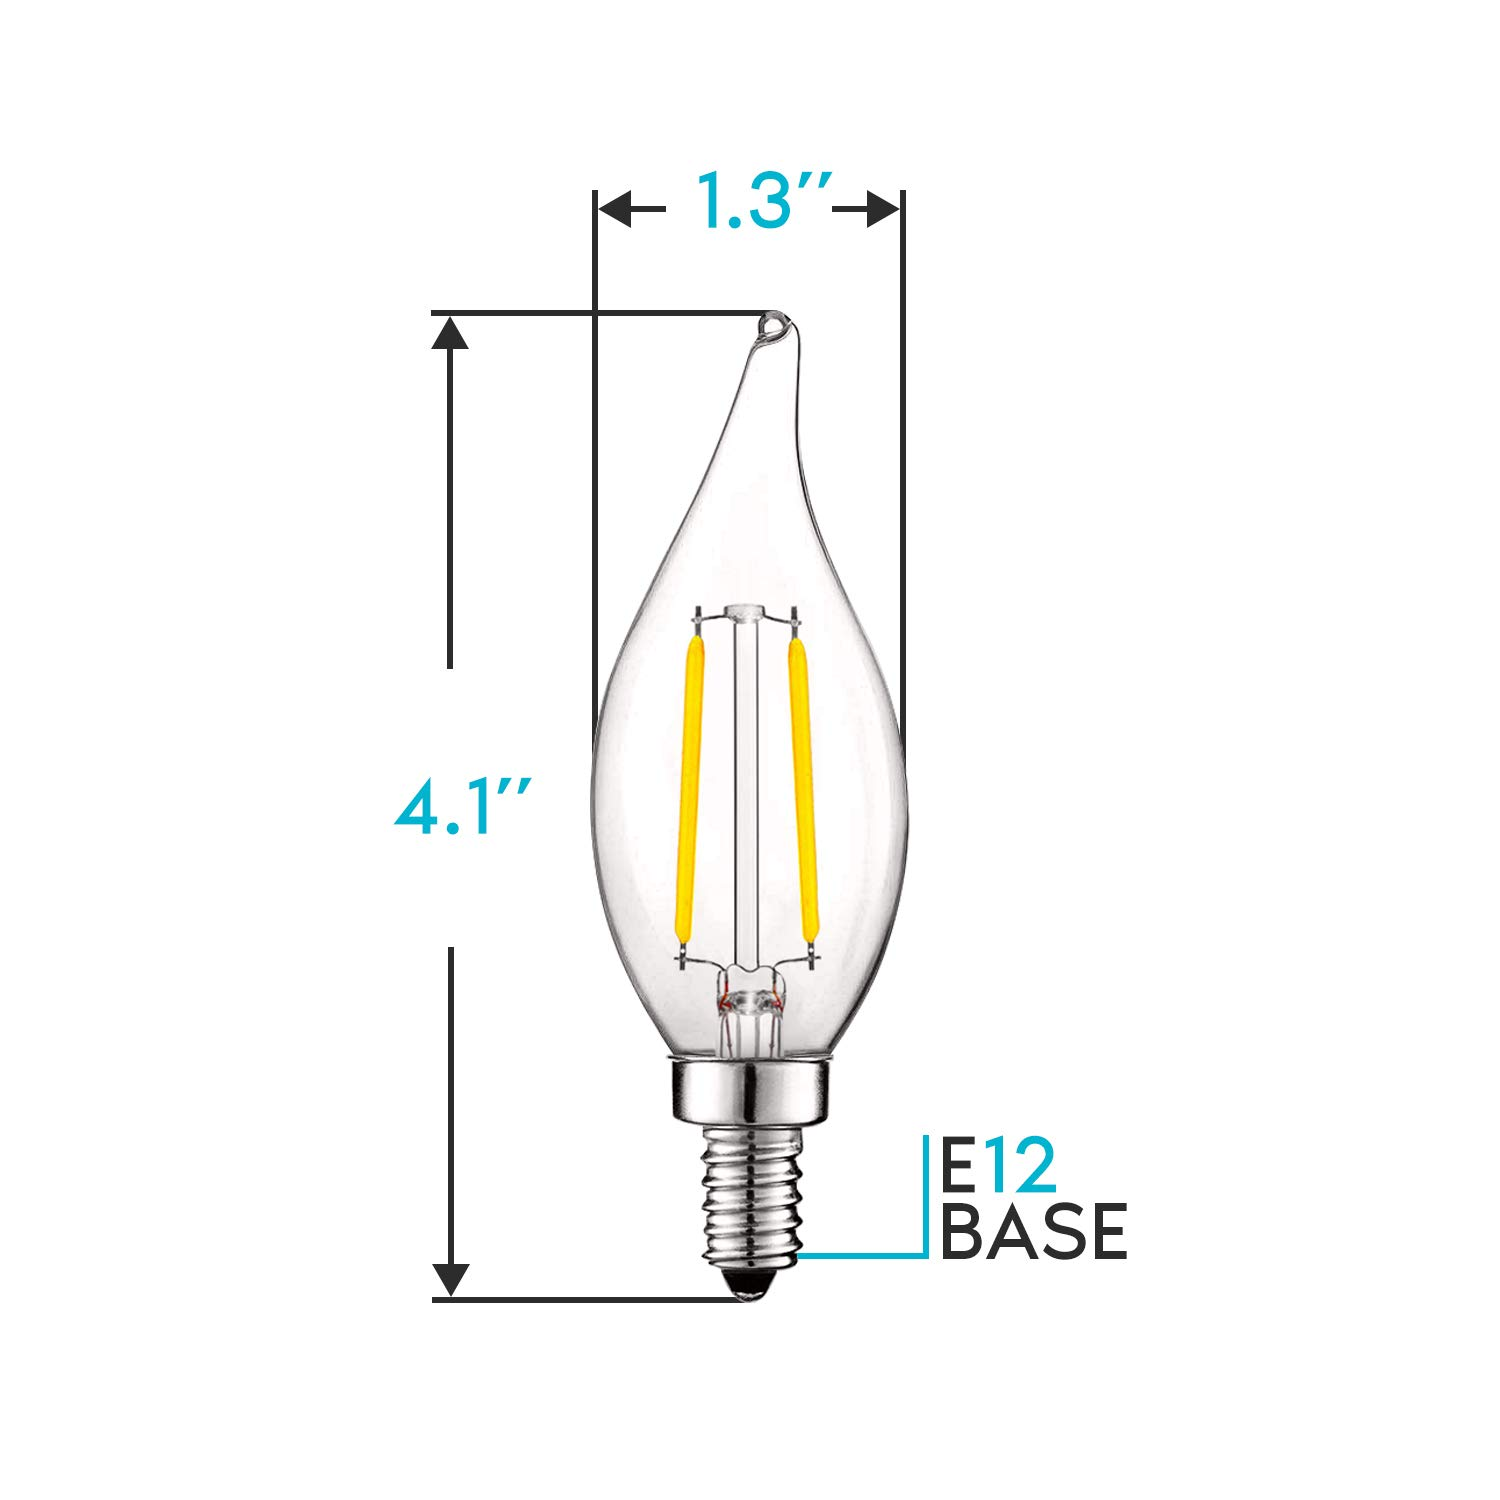 12 CLEAR LED GLOBE BULBS DIMMABLE COOL WHITE, 4W